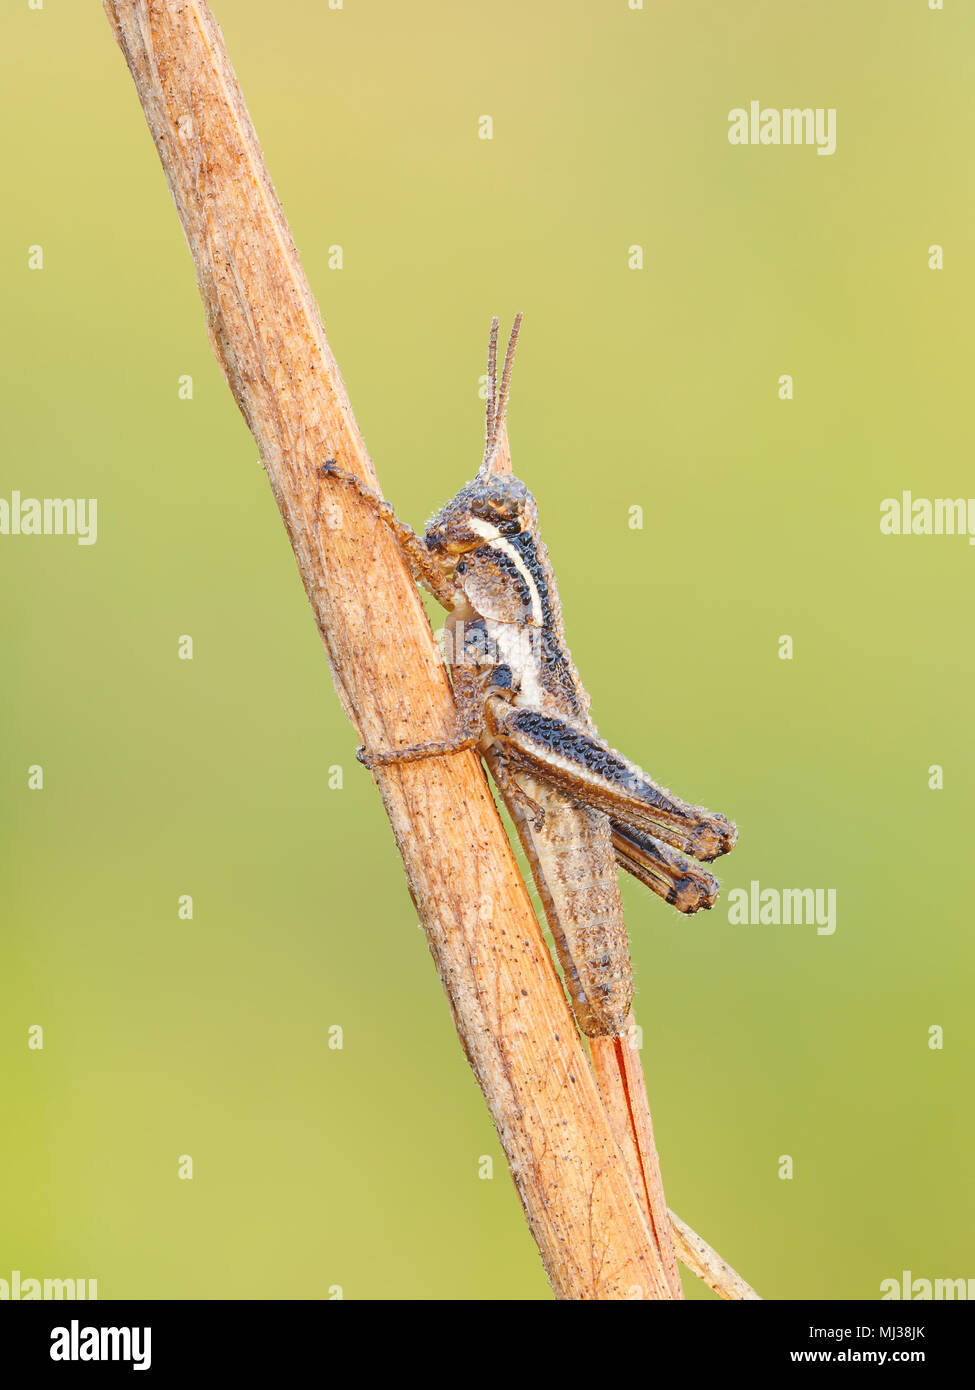 A dew-covered Spur-throated Grasshopper (Melanoplus sp.) nymph perches on a plant stem in the cool air of early morning. - Stock Image